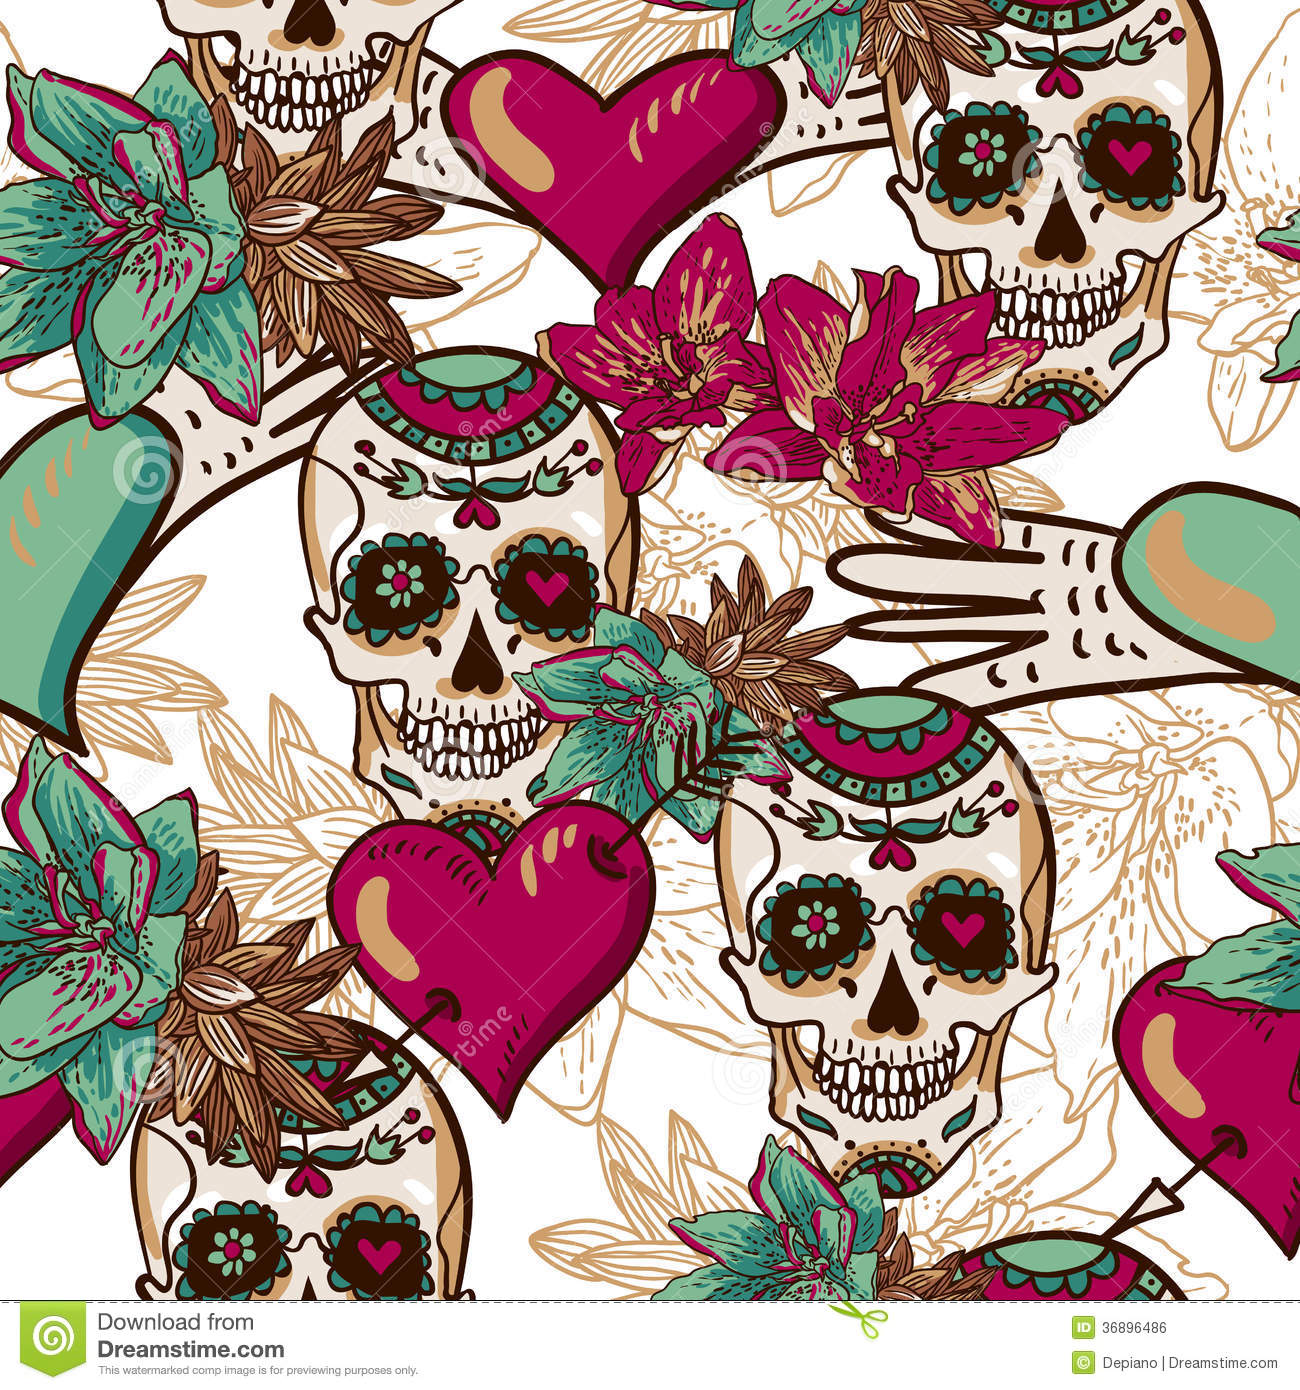 Tribal Pattern Wallpaper Hd Skull Hearts And Flowers Seamless Background Royalty Free